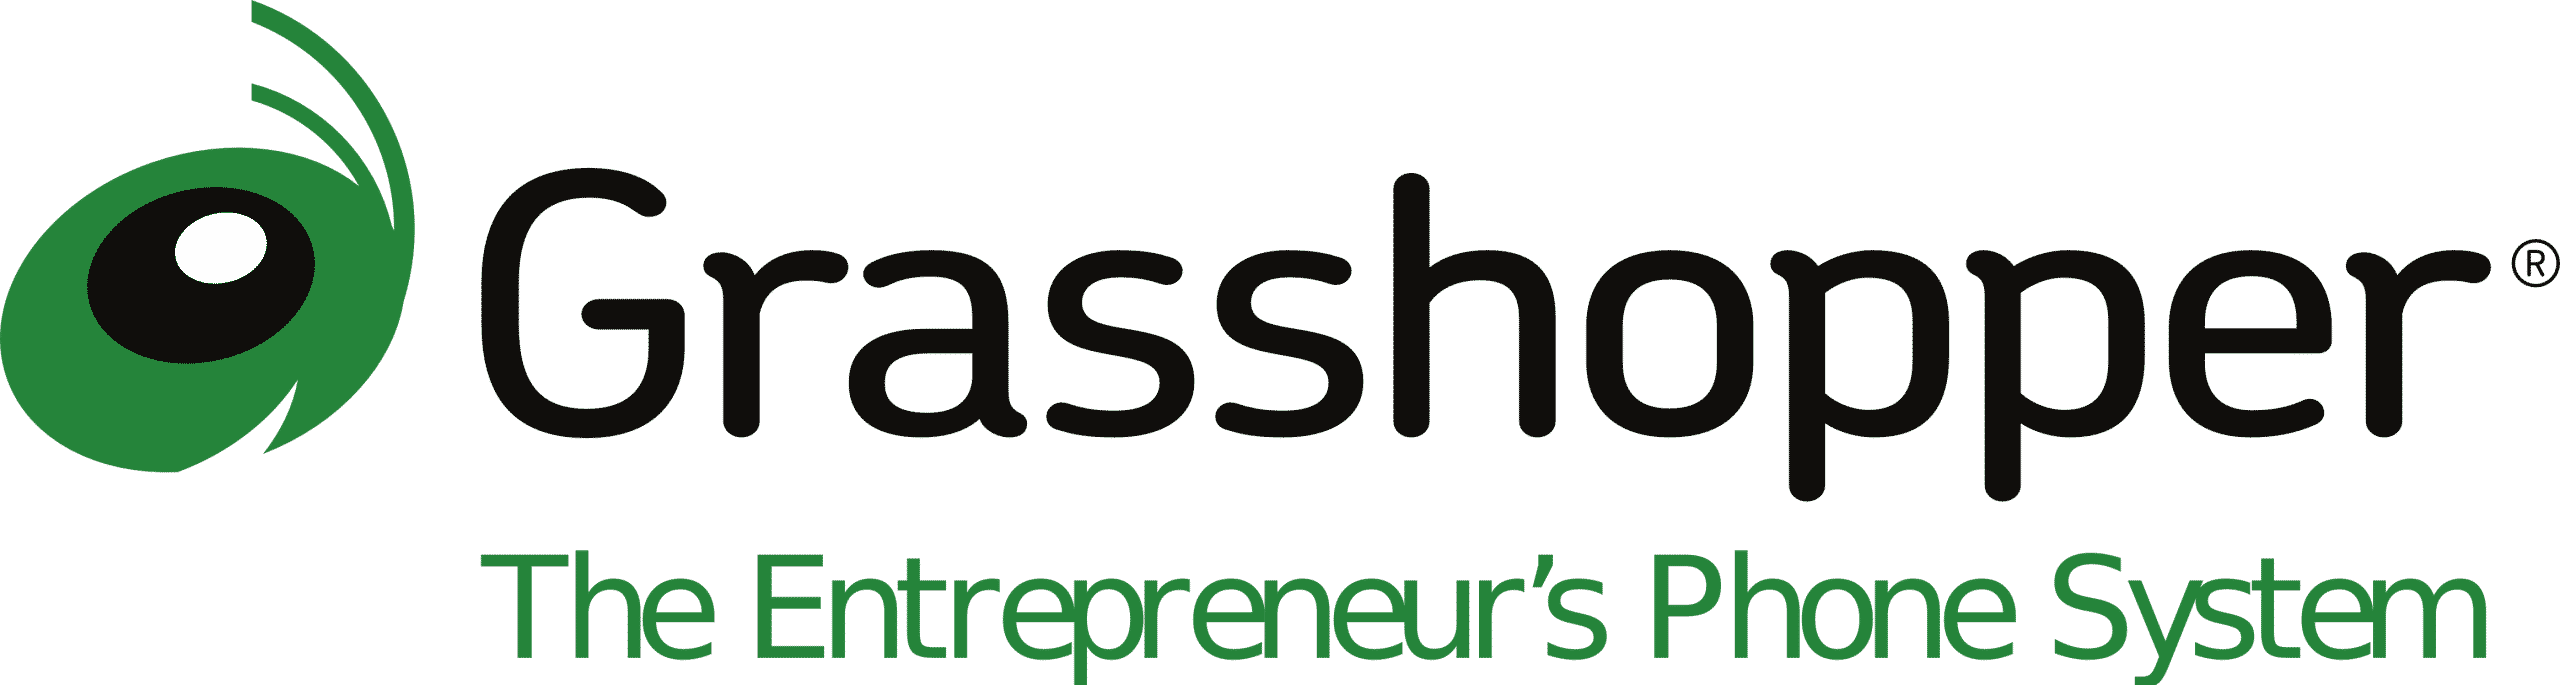 grasshopper-VOIP-Business-Phone-Systems-Best-Virtual-Phone-System-Application-Businesses